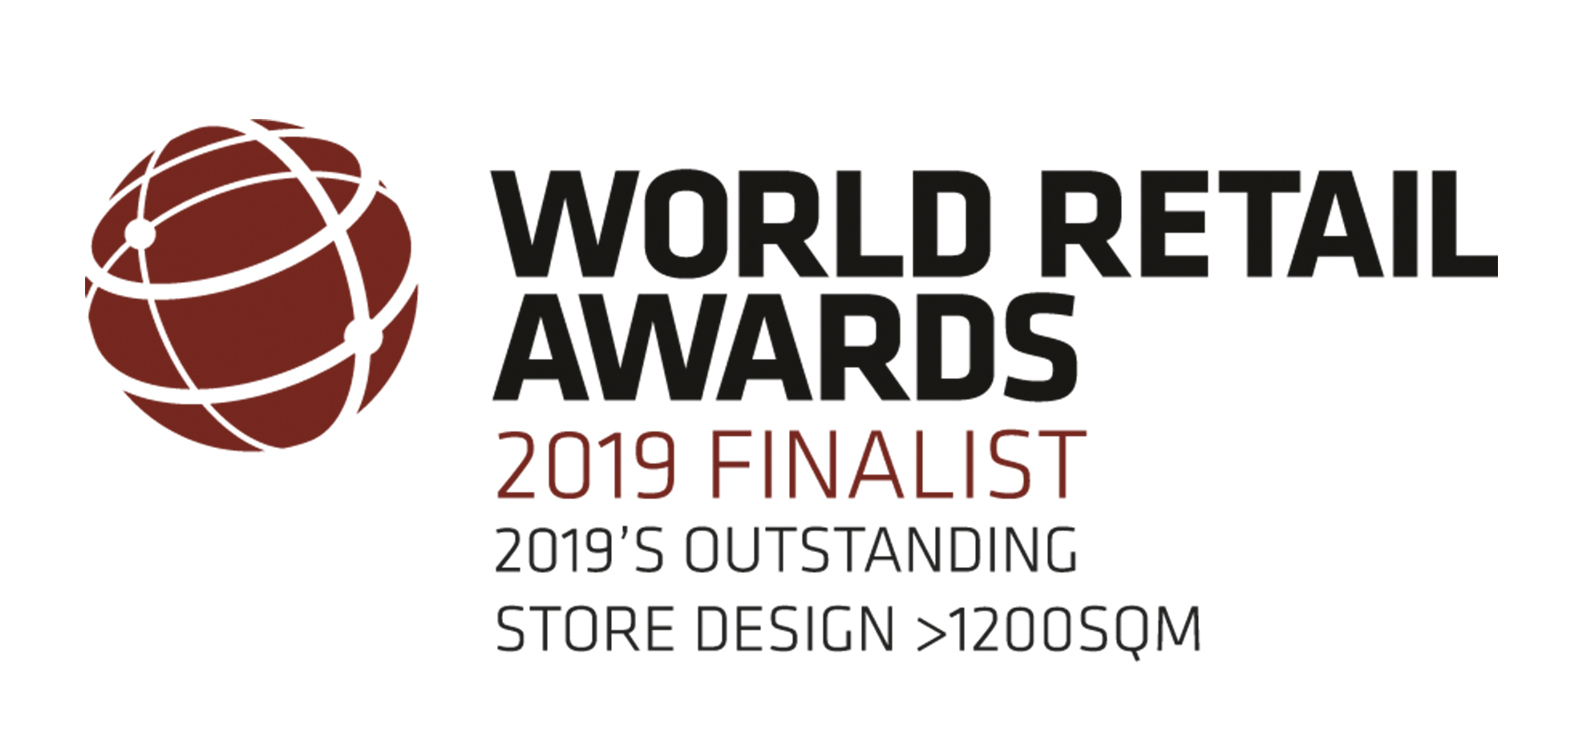 WORLD RETAIL AWARDS.jpg